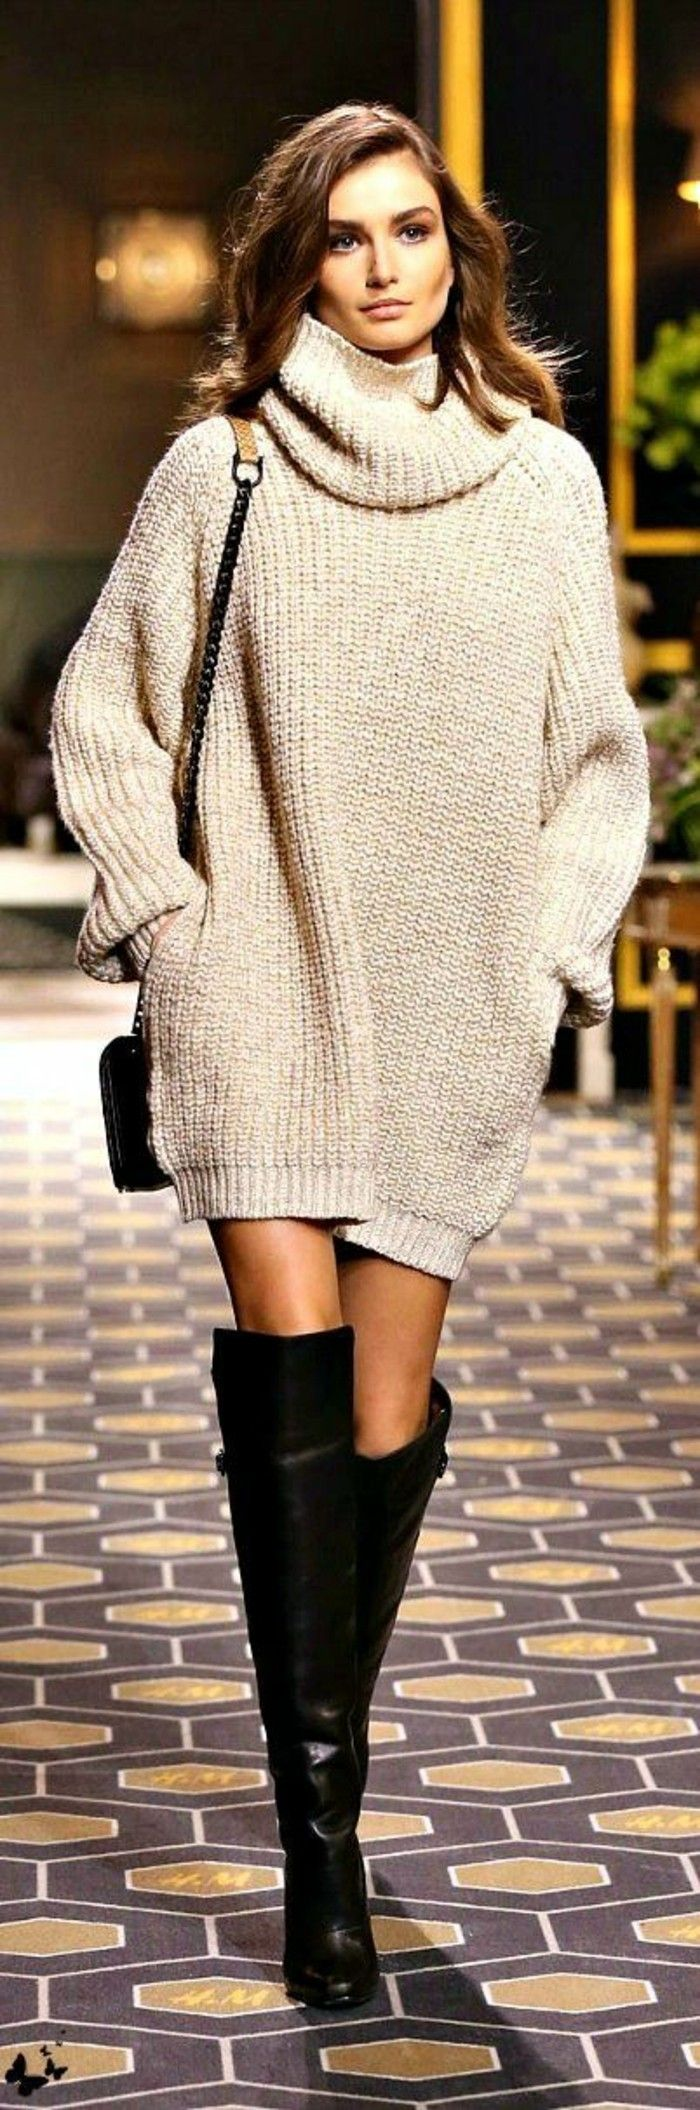 62 best Fall Outfits images on Pinterest | My style, Dress skirt and ...